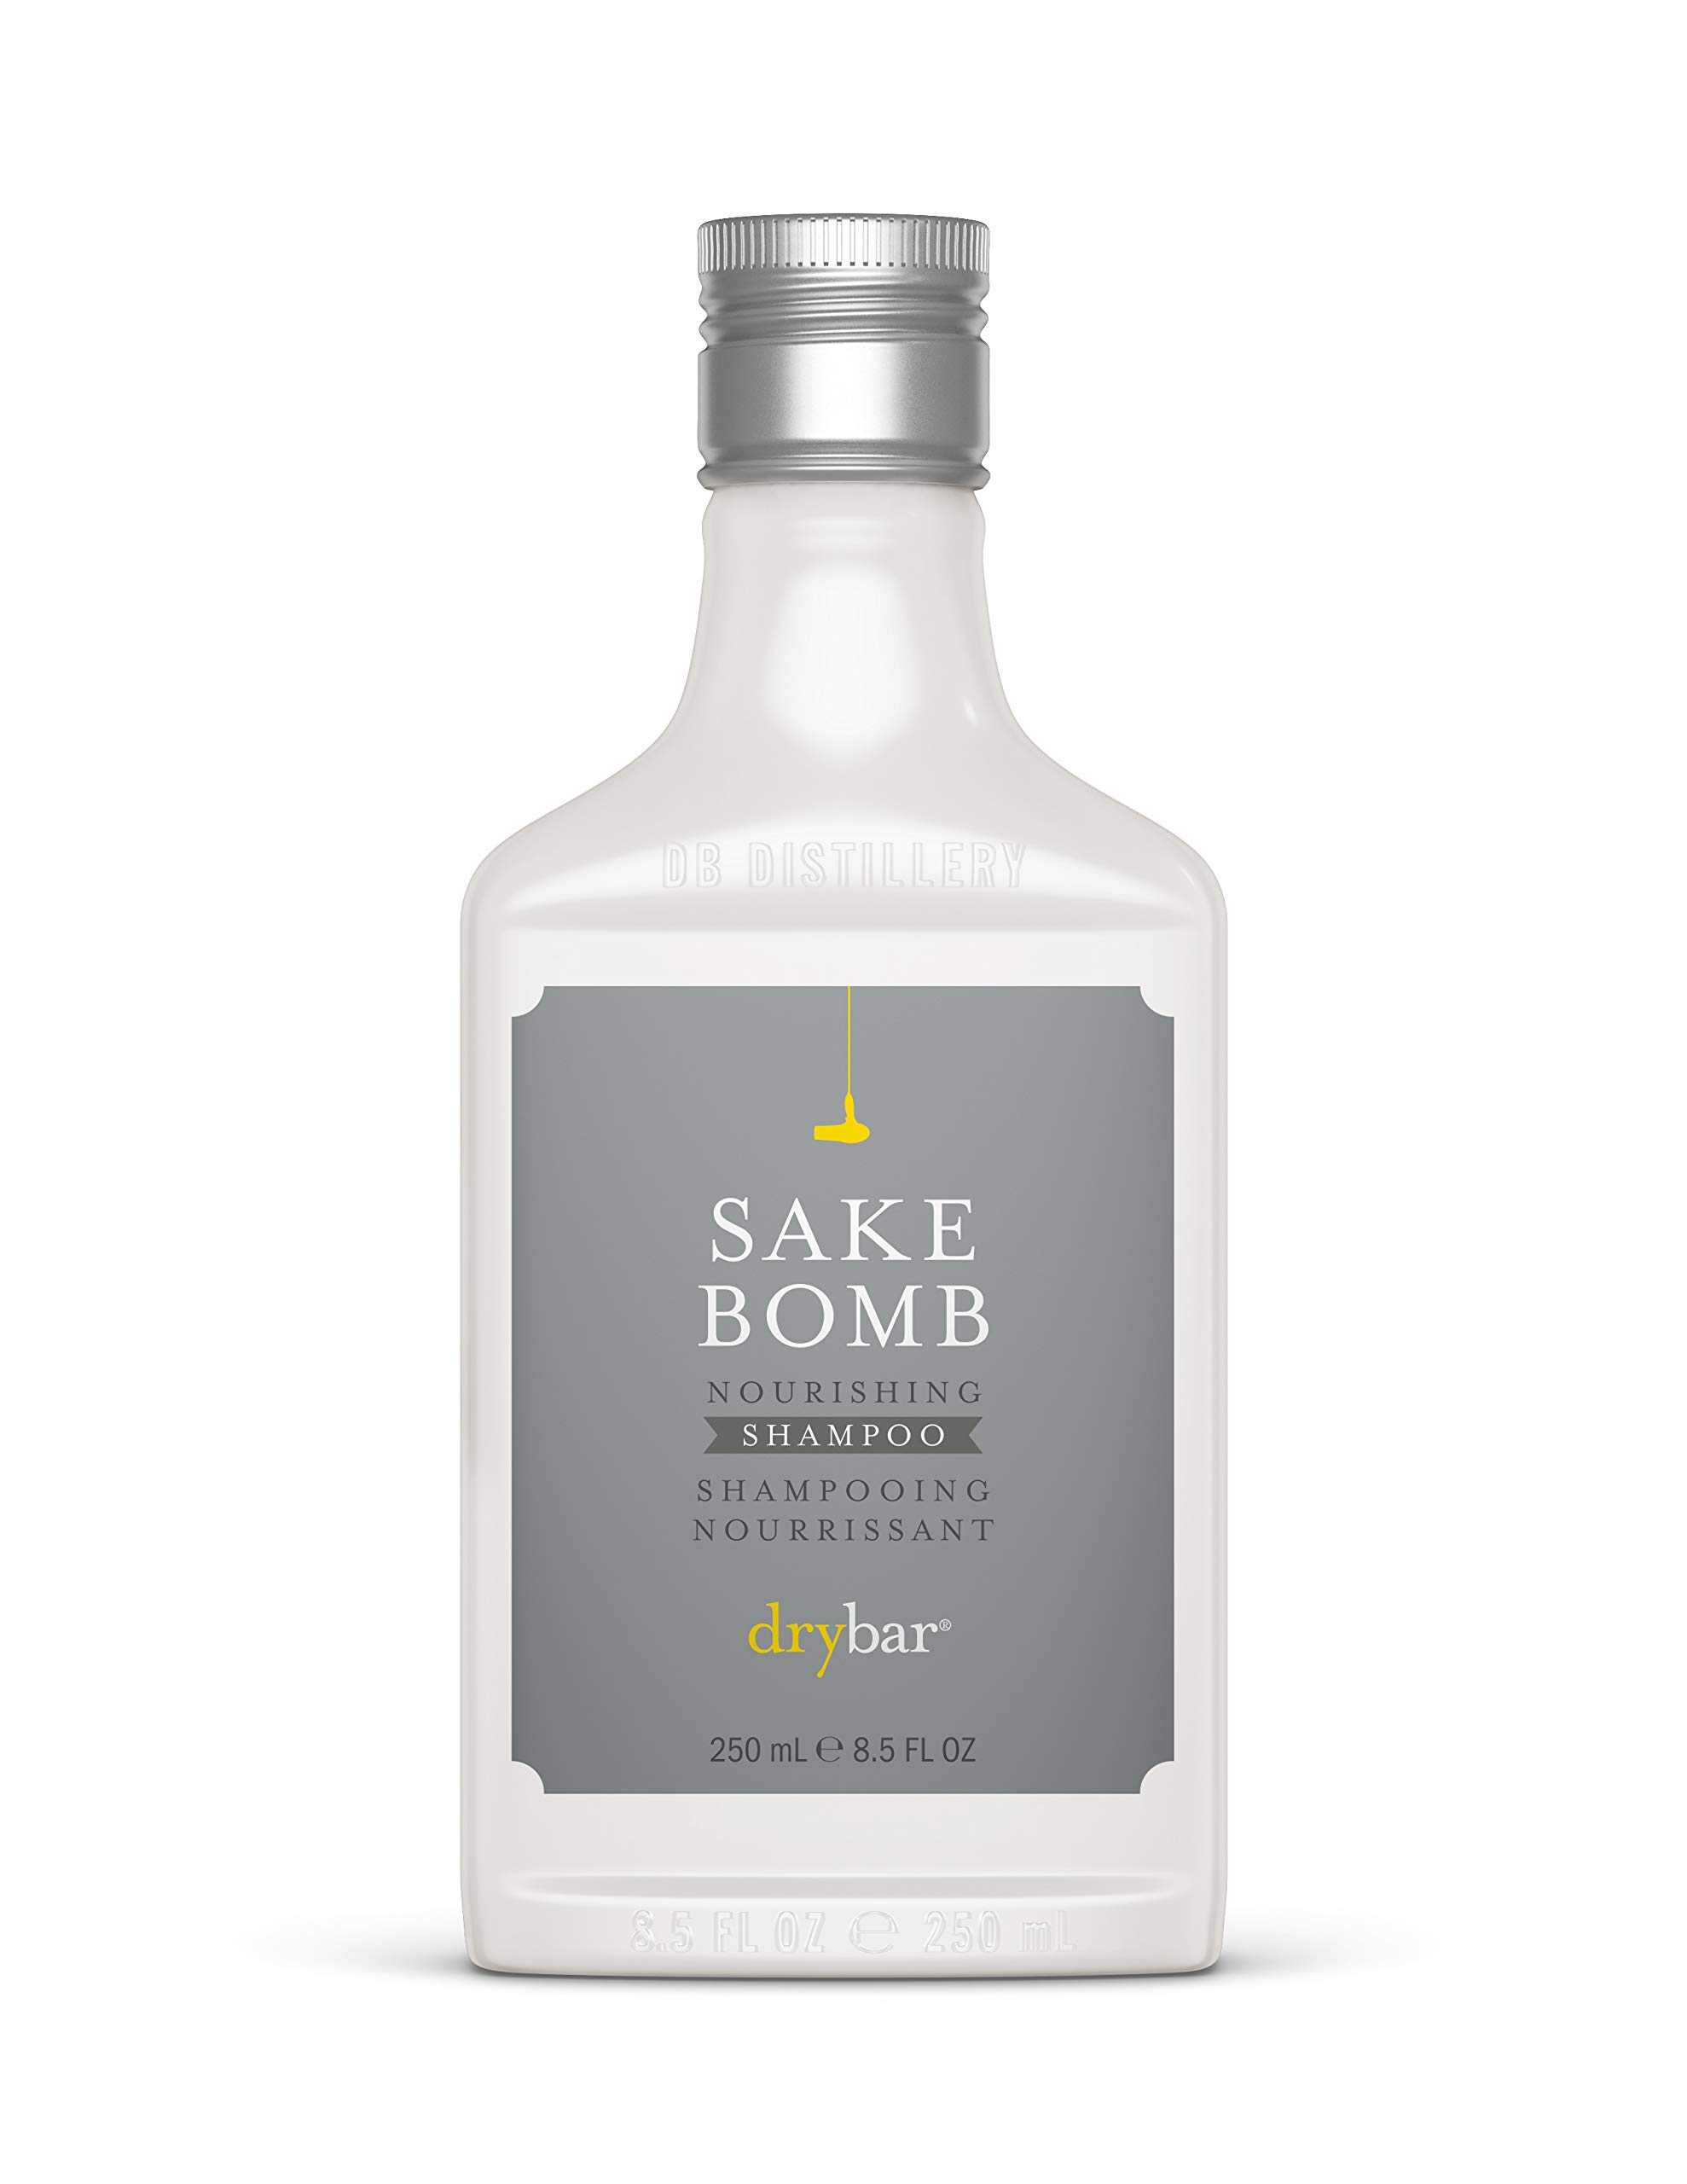 Drybar Sake Bomb Nourishing Shampoo 8.5 Ounces by DRYBAR